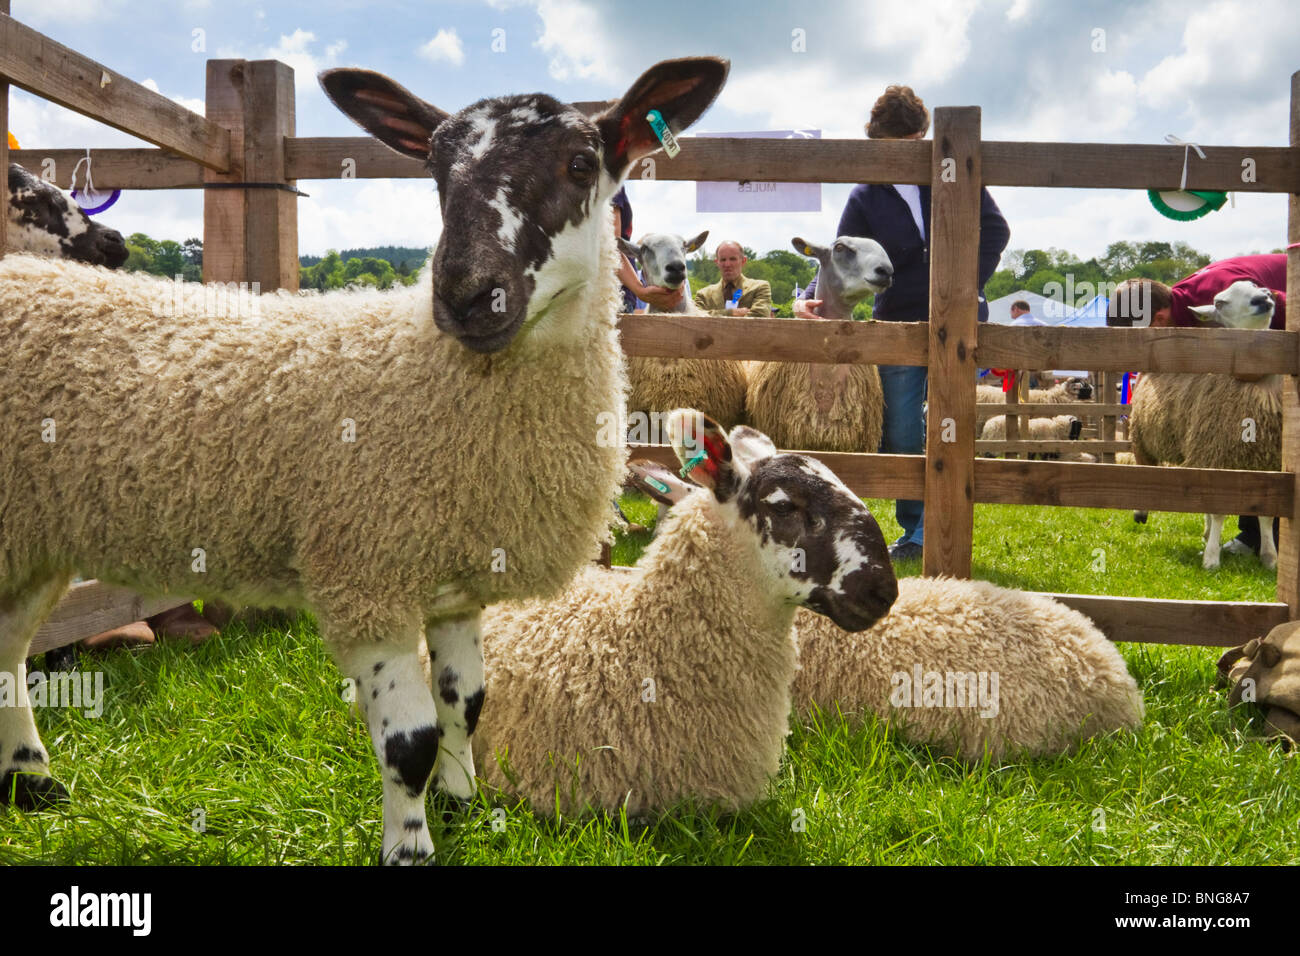 Cheviot lambs on display at the annual Northumberland County Show held in Corbridge each May, England - Stock Image